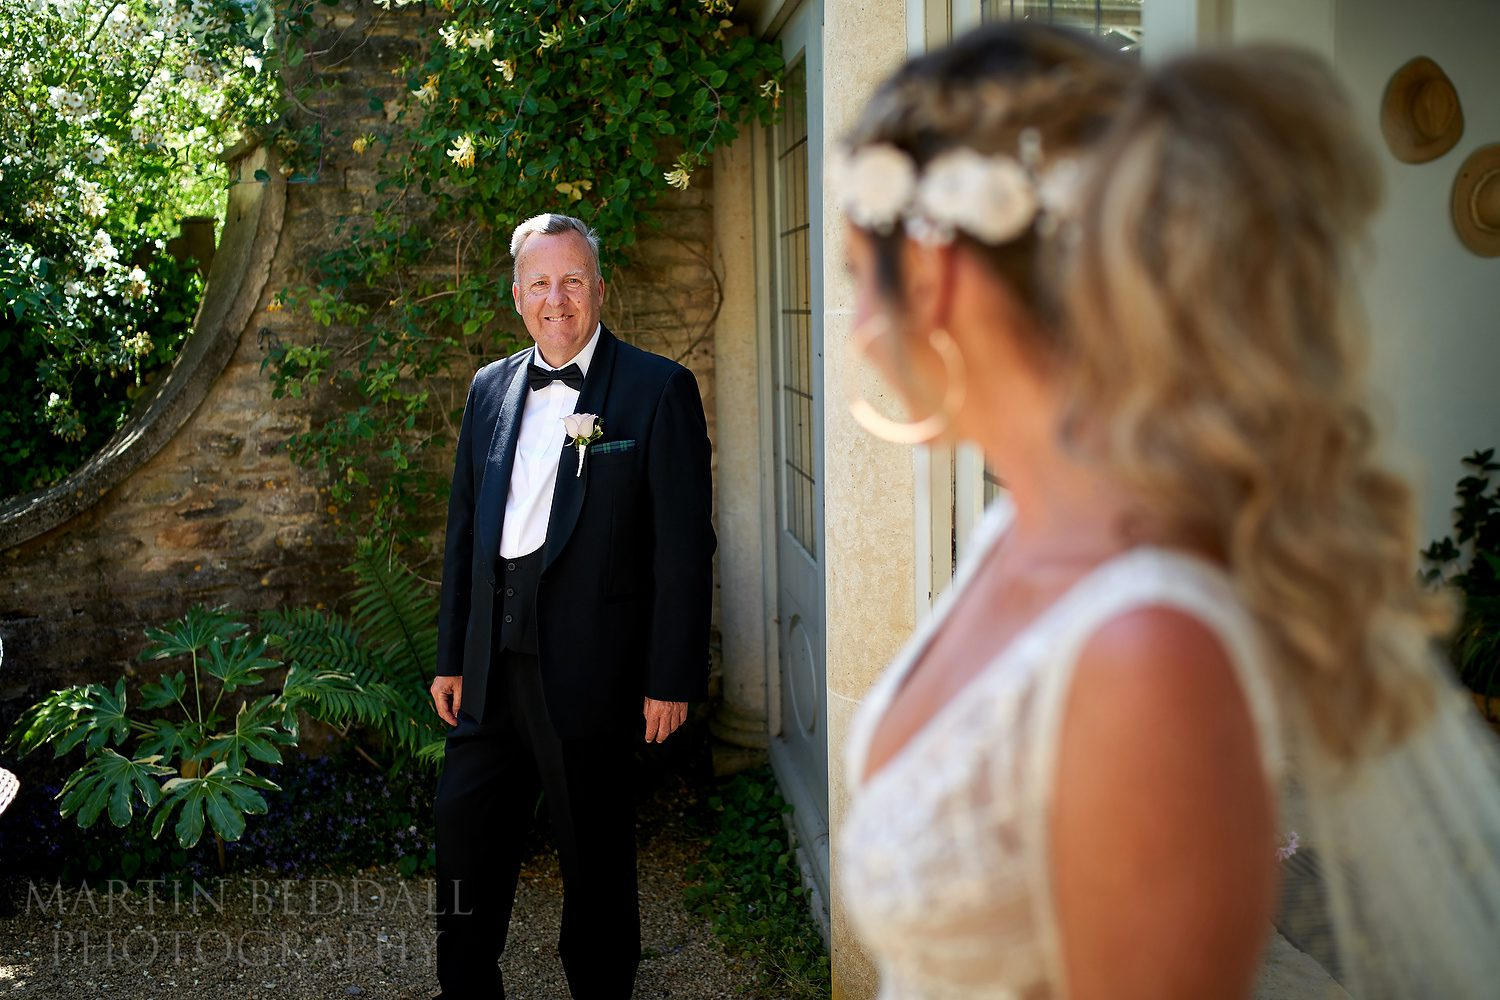 First look with his daughter the bride